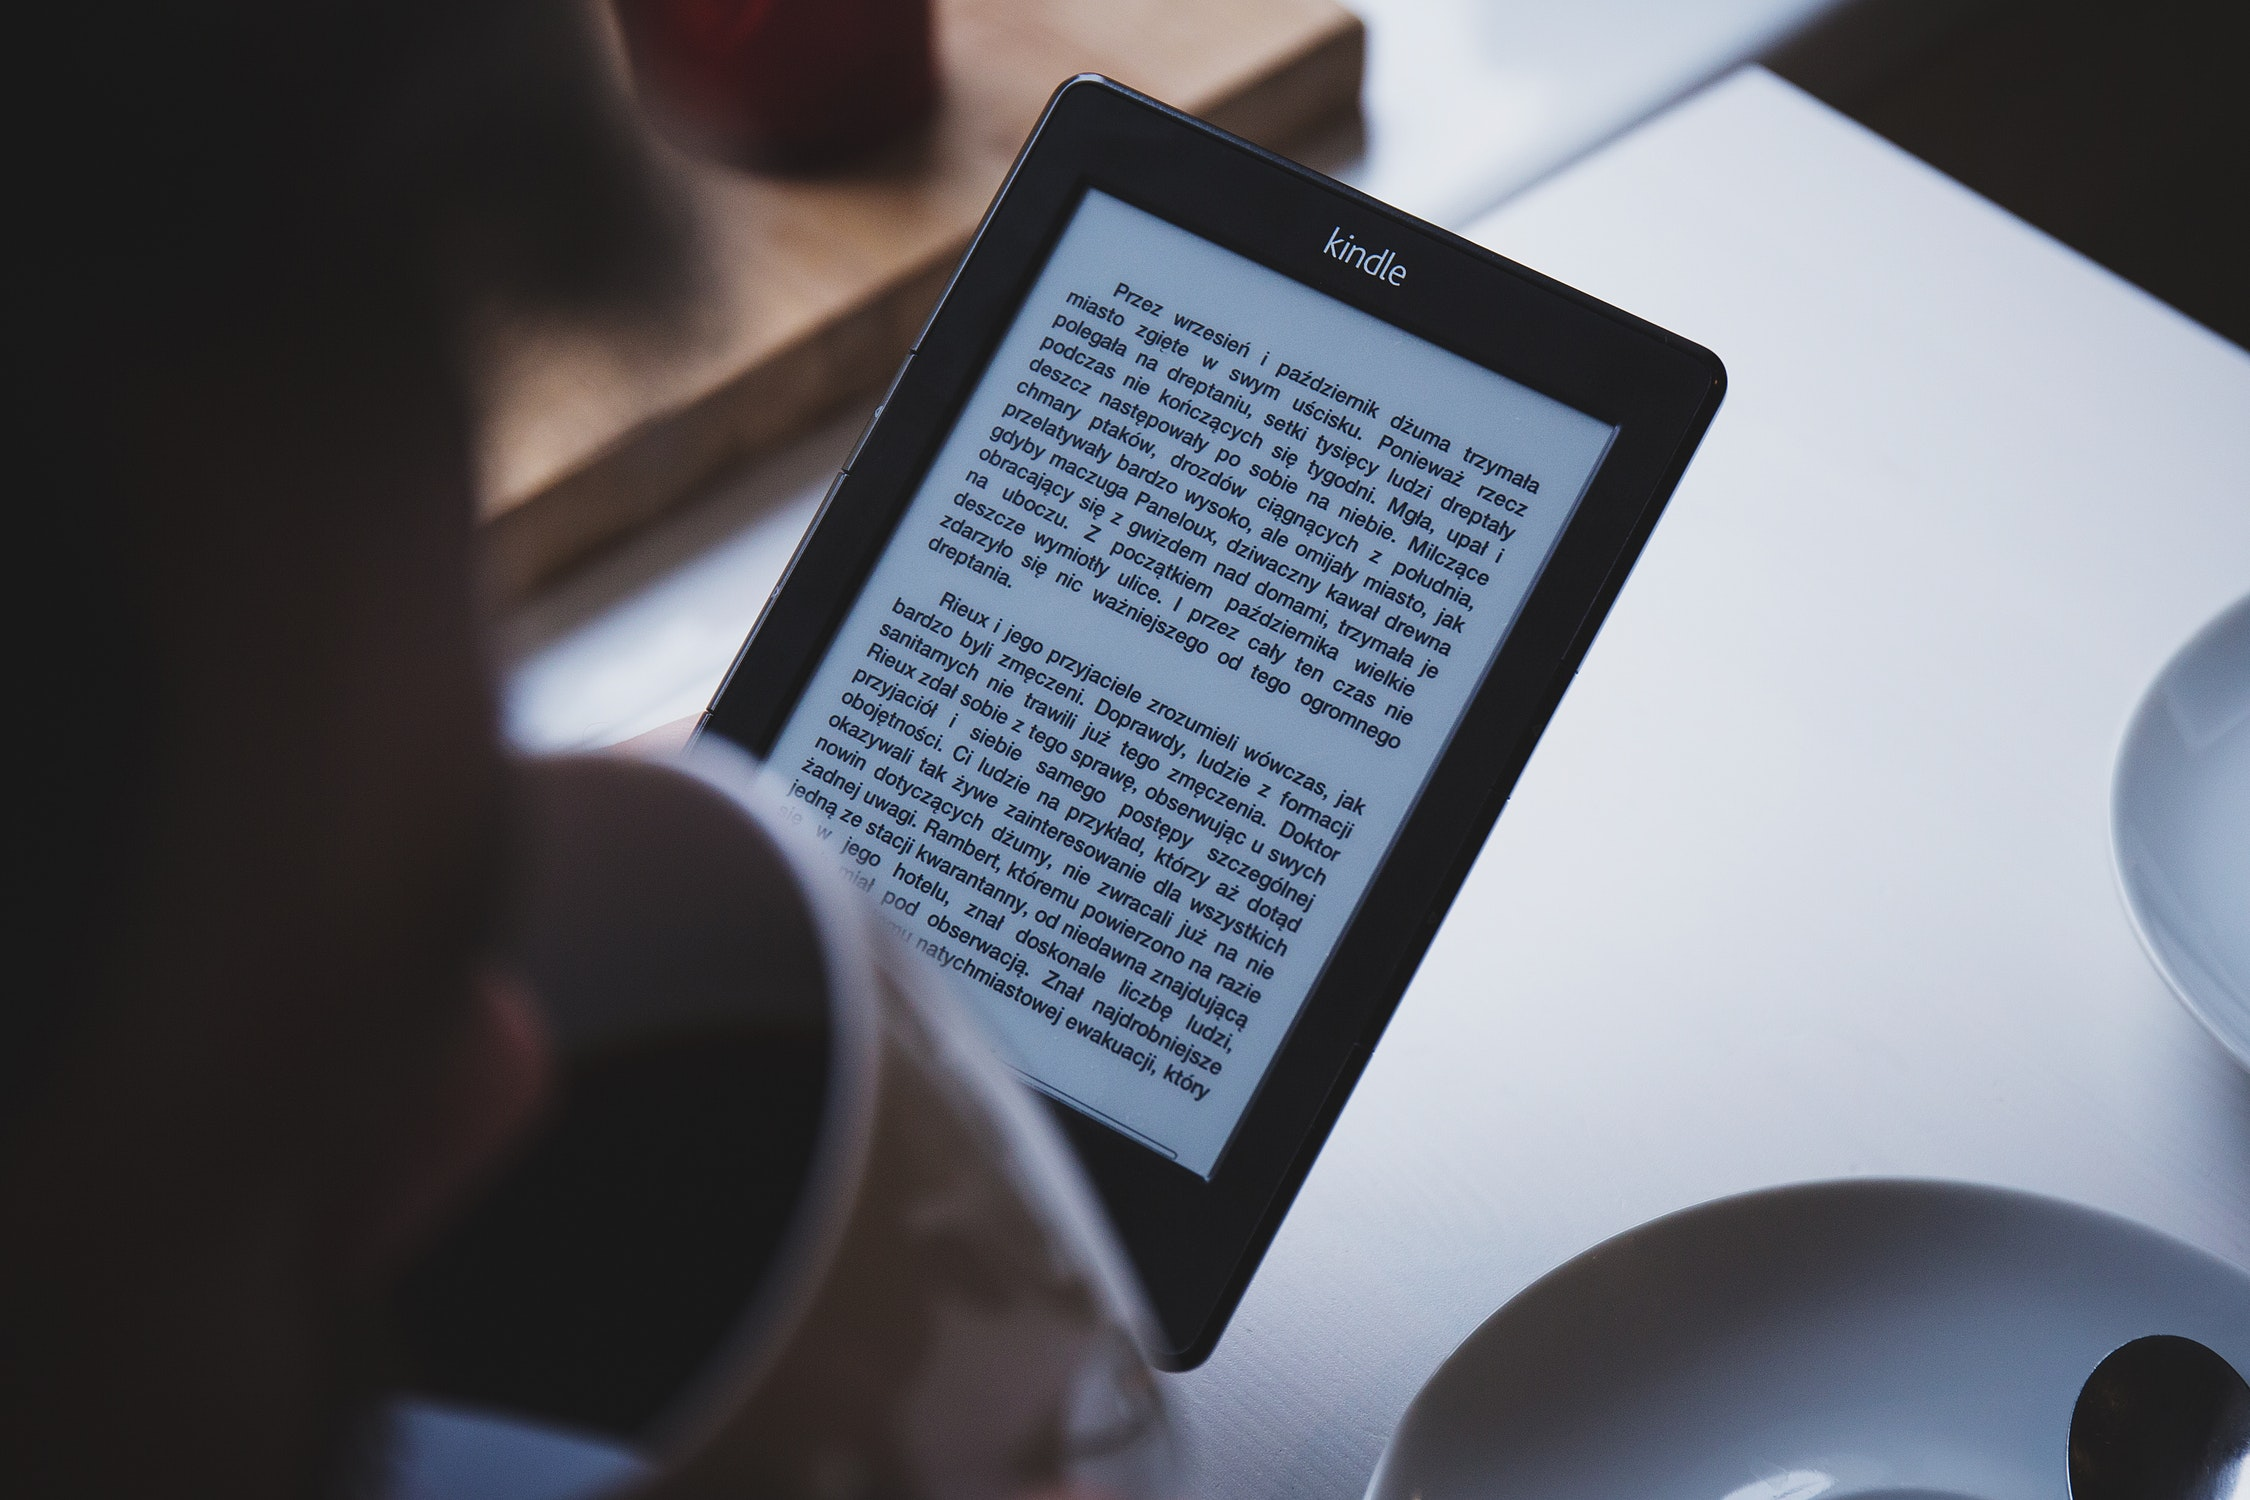 Reading Polish books on an e-book reader